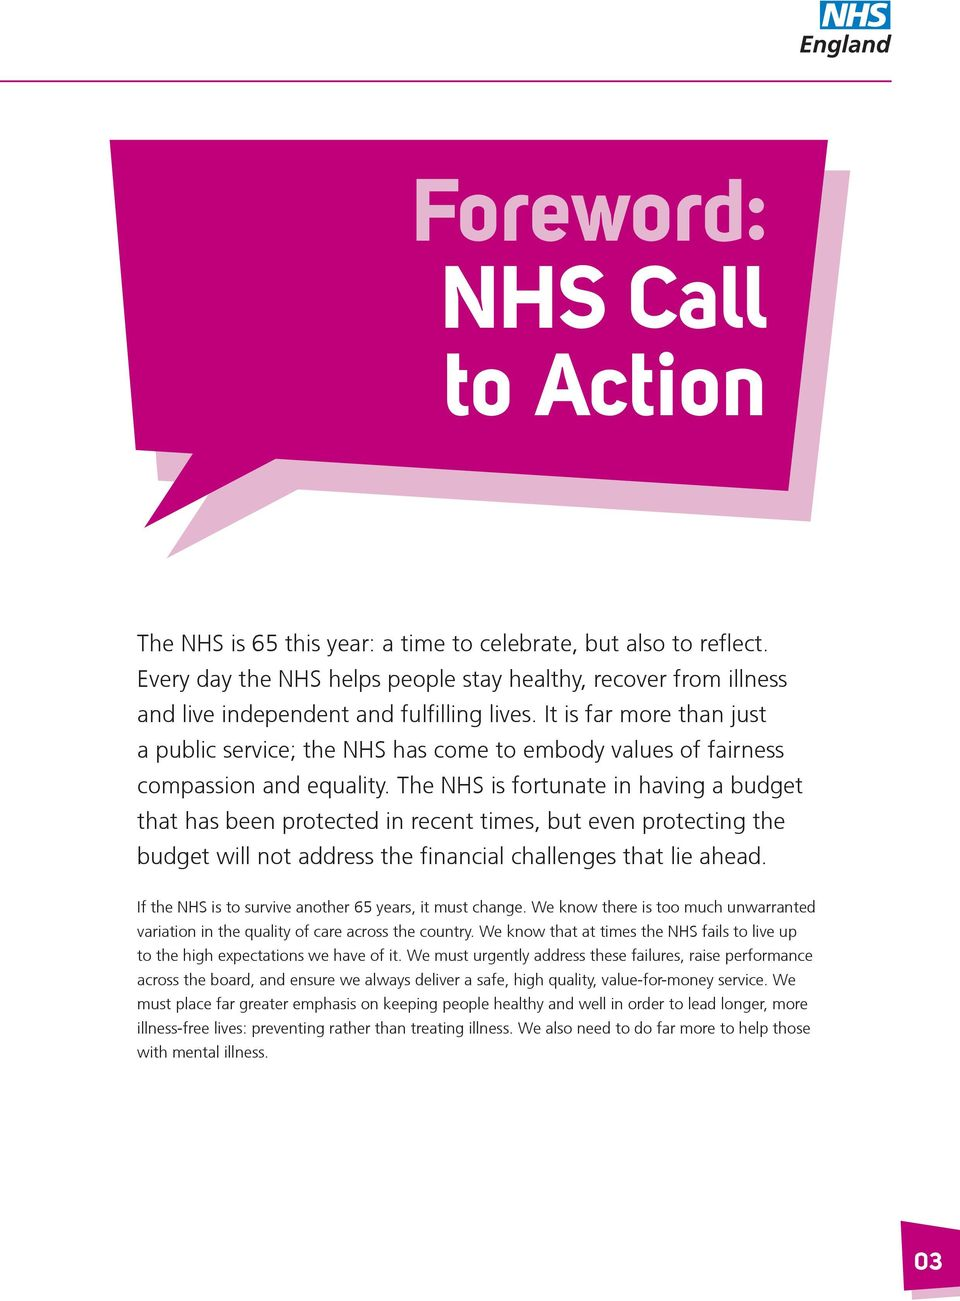 It is far more than just a public service; the NHS has come to embody values of fairness compassion and equality.